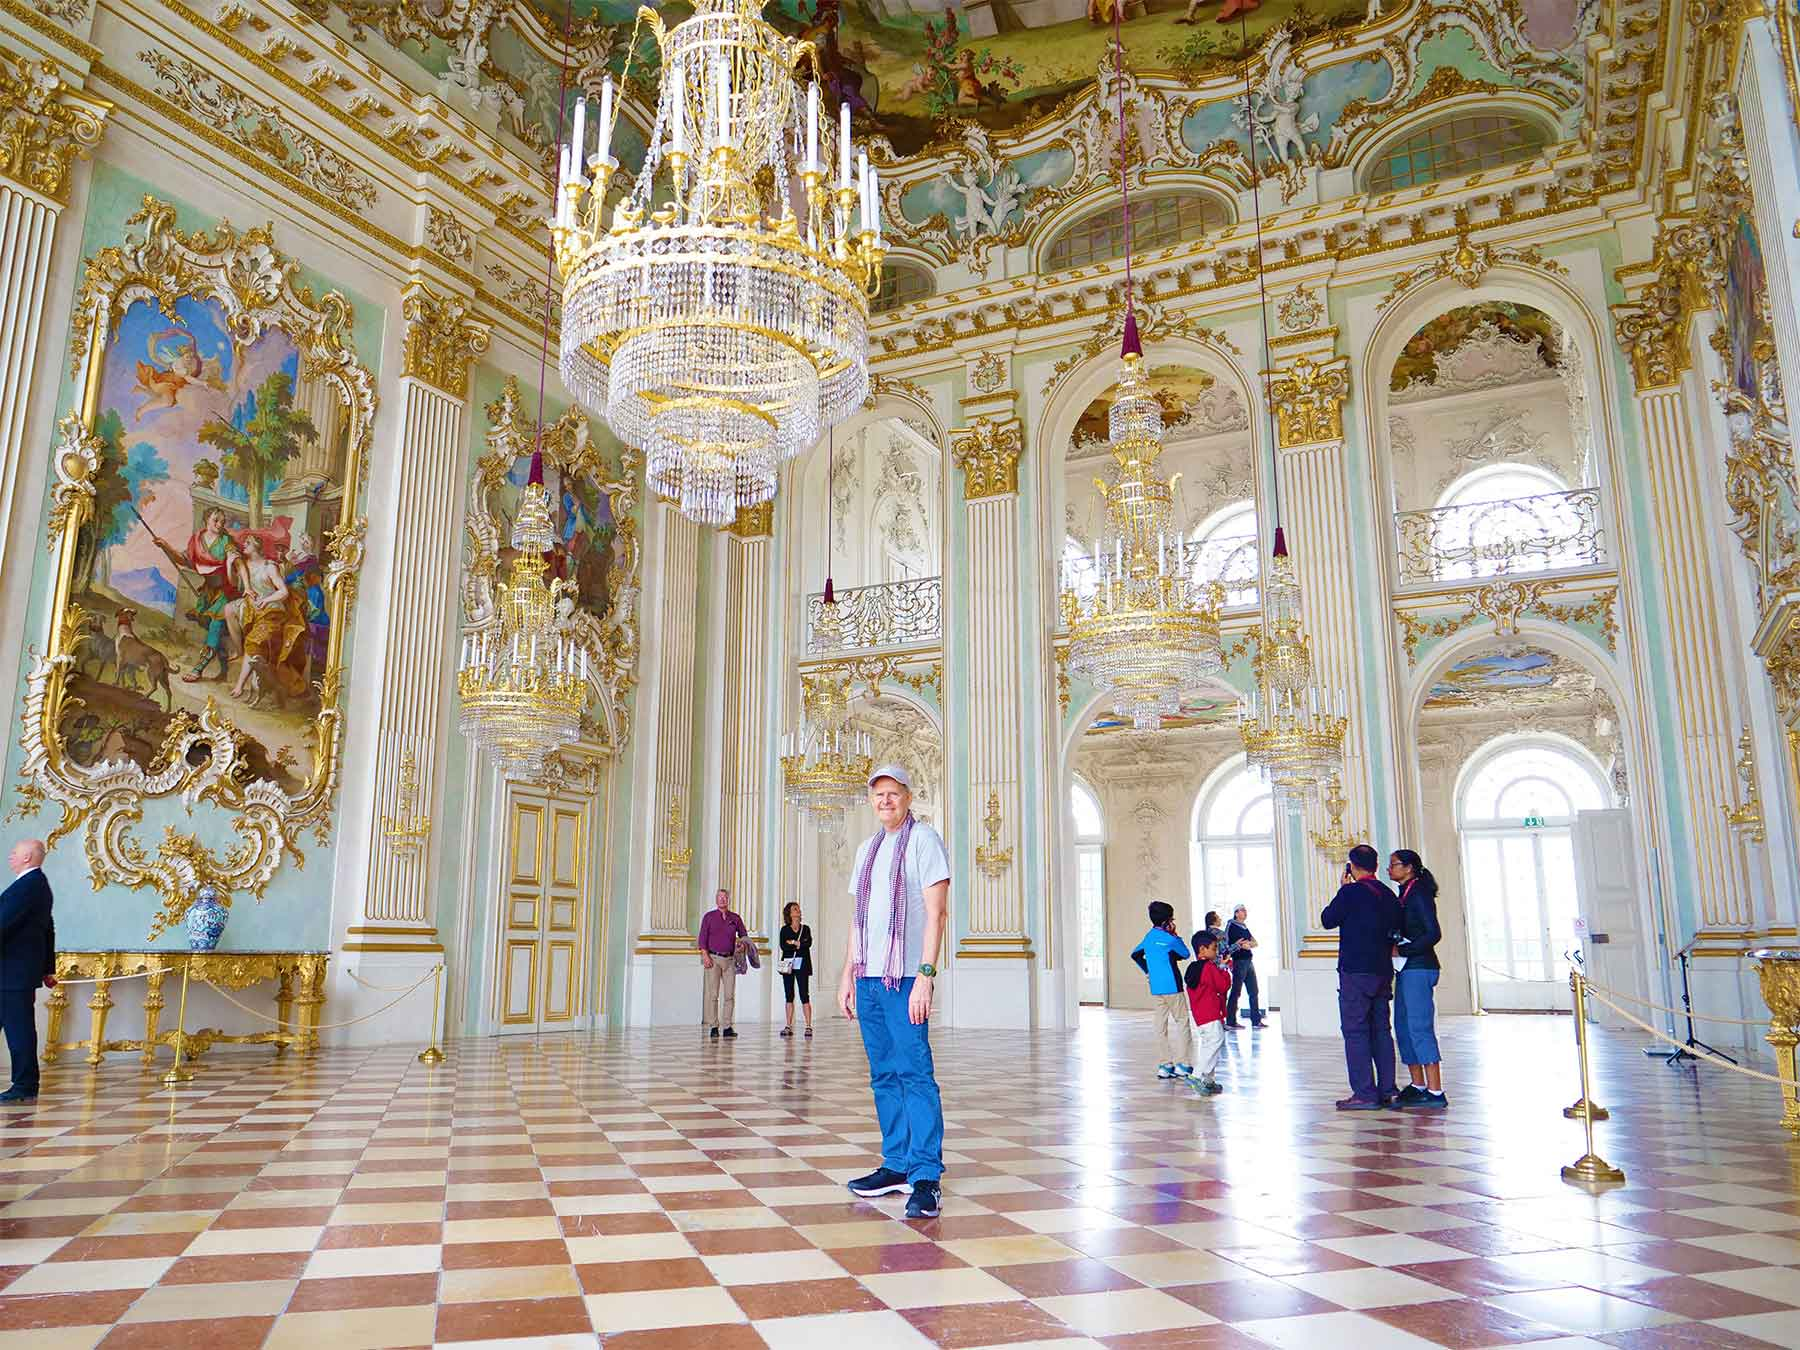 Nymphenburg Baroque Palace | Surfing Munich Learning Adventure | Professor Dr Steven A Martin